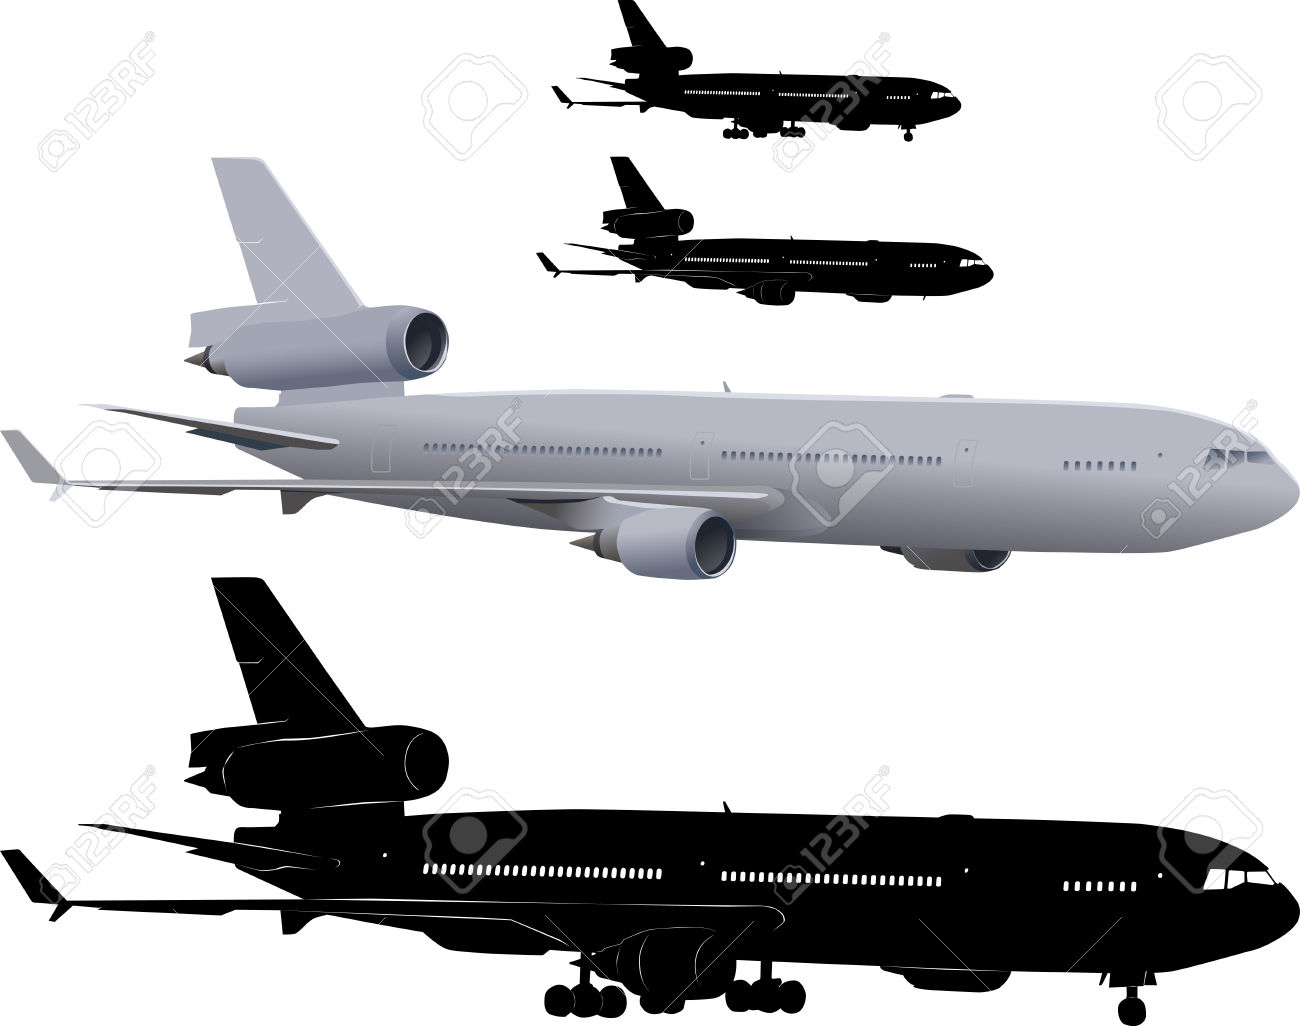 Md 11 Clipart.